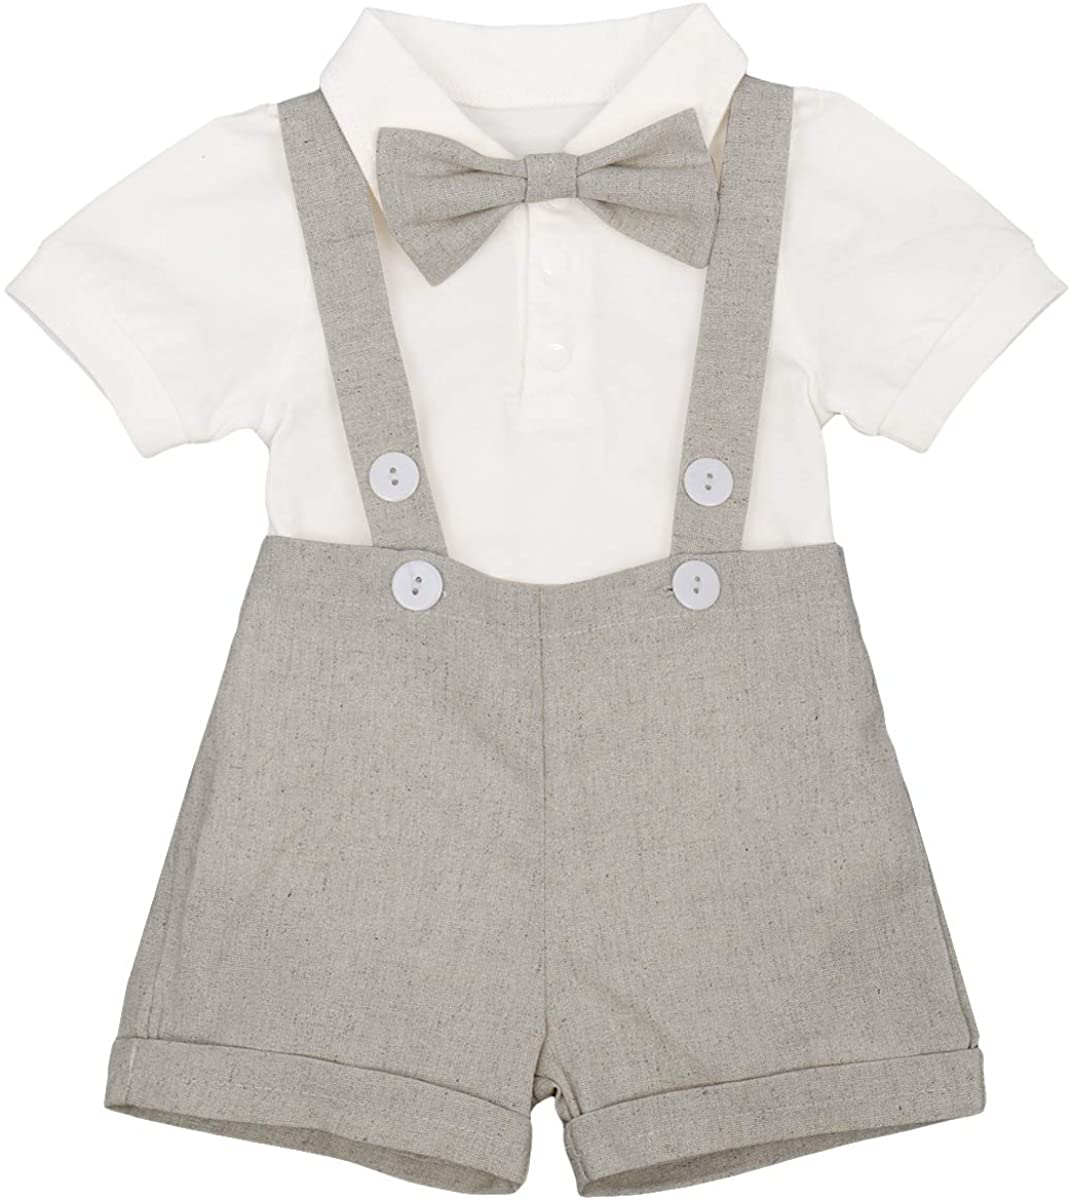 Baby Boys Formal Suit Gentleman Bowtie Romper Suspenders Shorts Wedding Tuxedo Outfit Cake Smash Christening Clothes